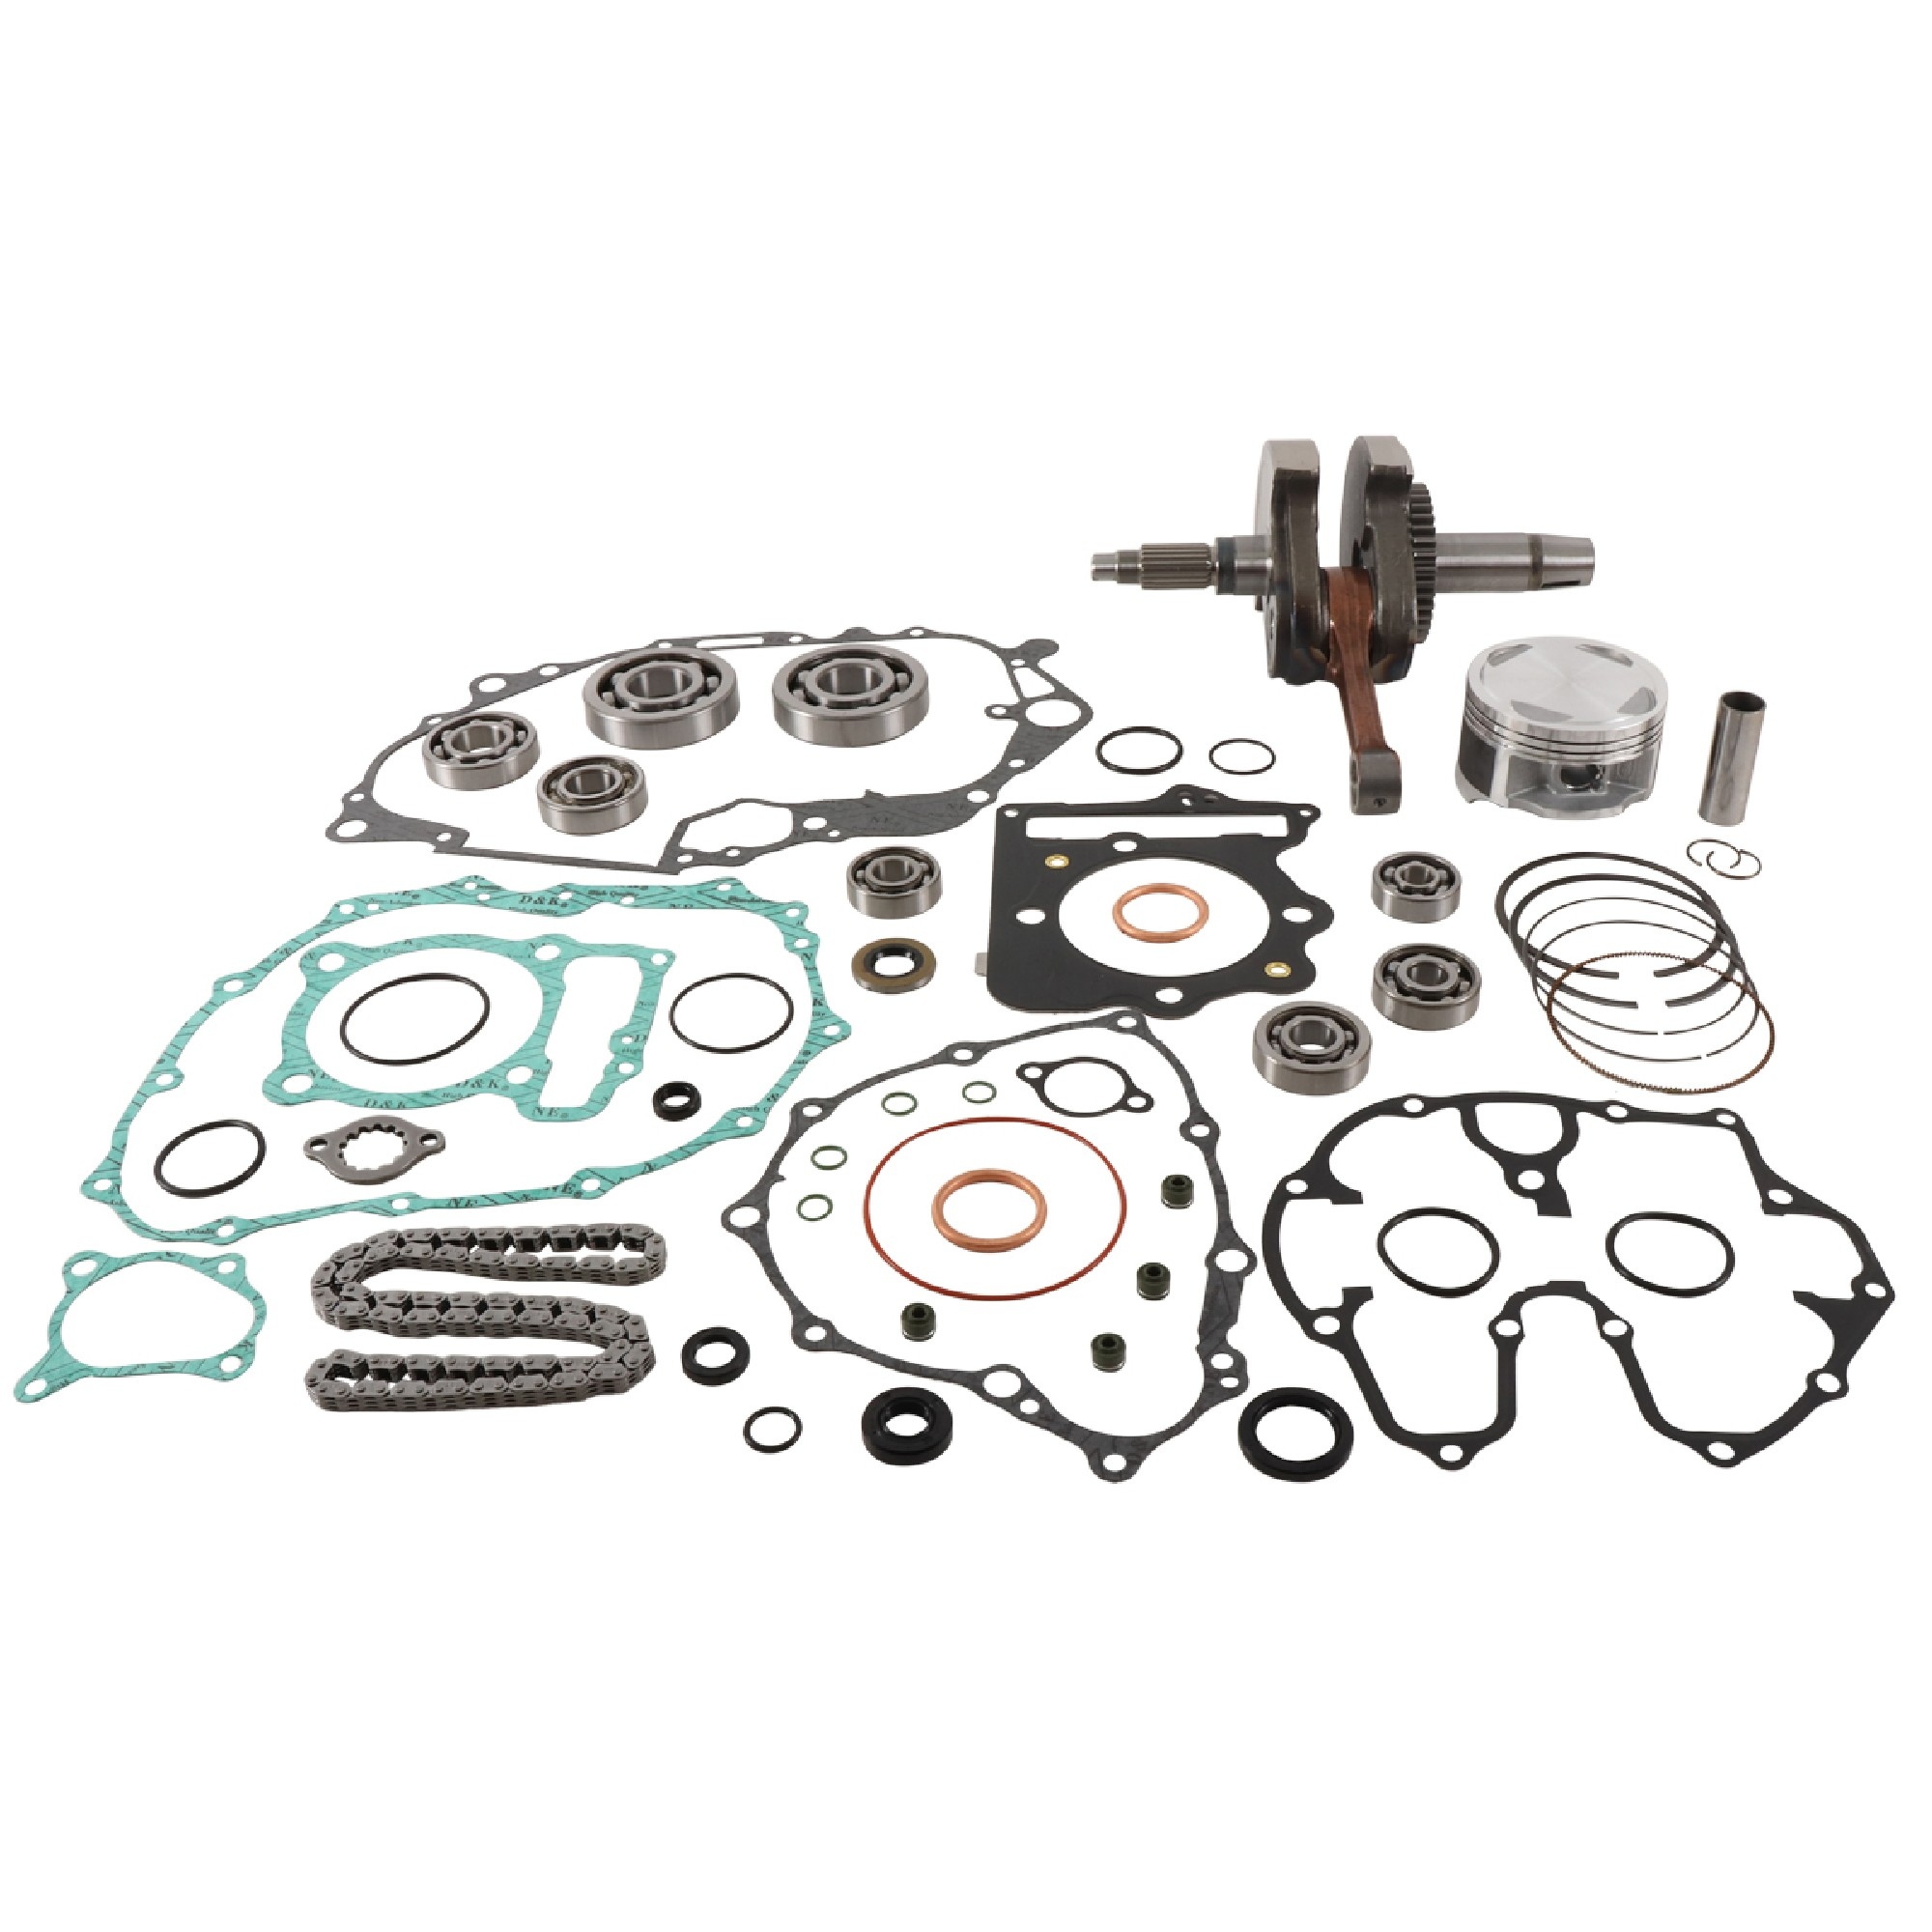 Wrench Rabbit Complete Engine Rebuild Kits WR101-199 for